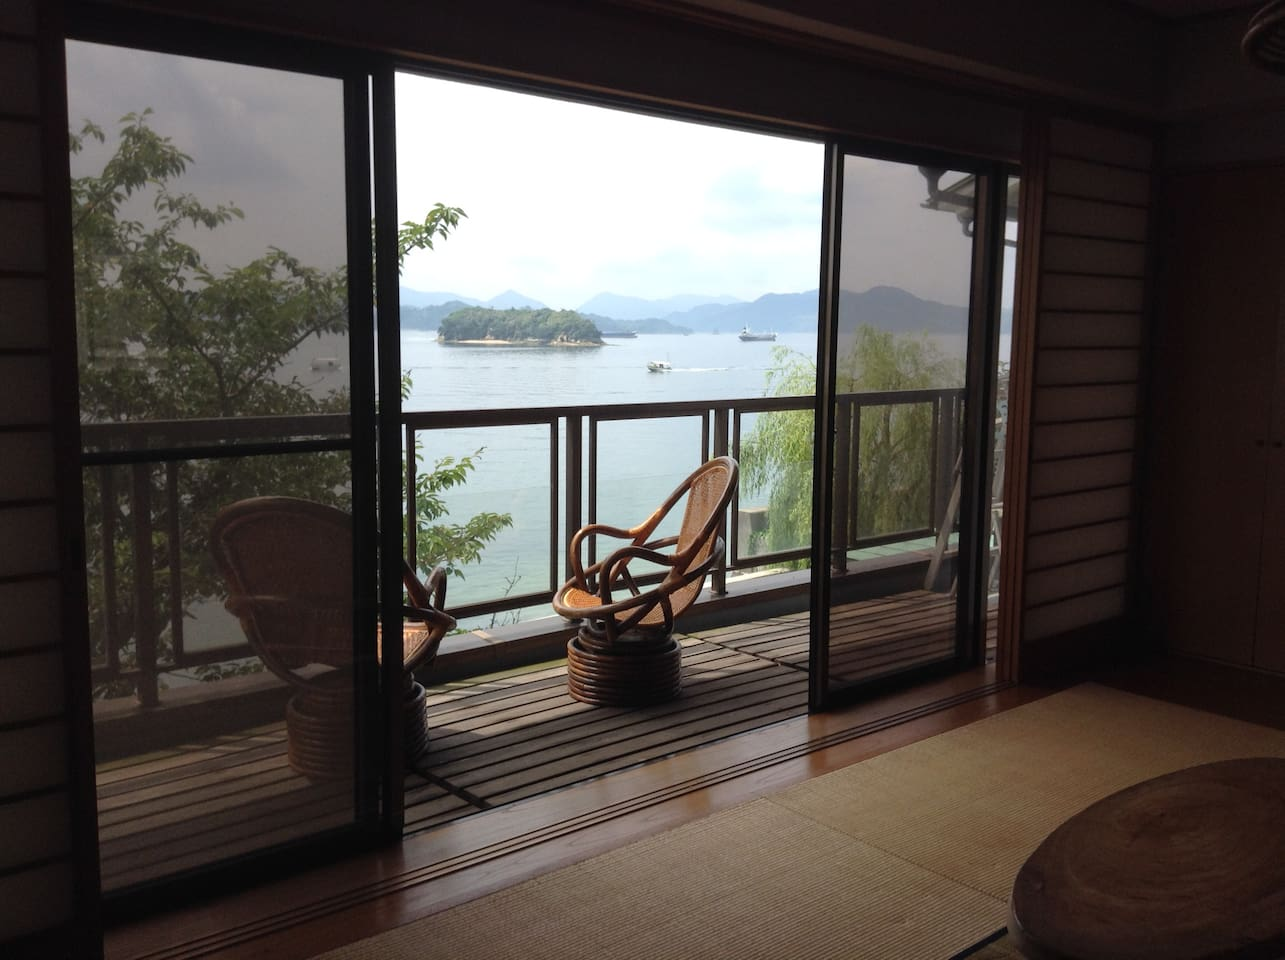 Every room commands a beautiful view of Setouchi.